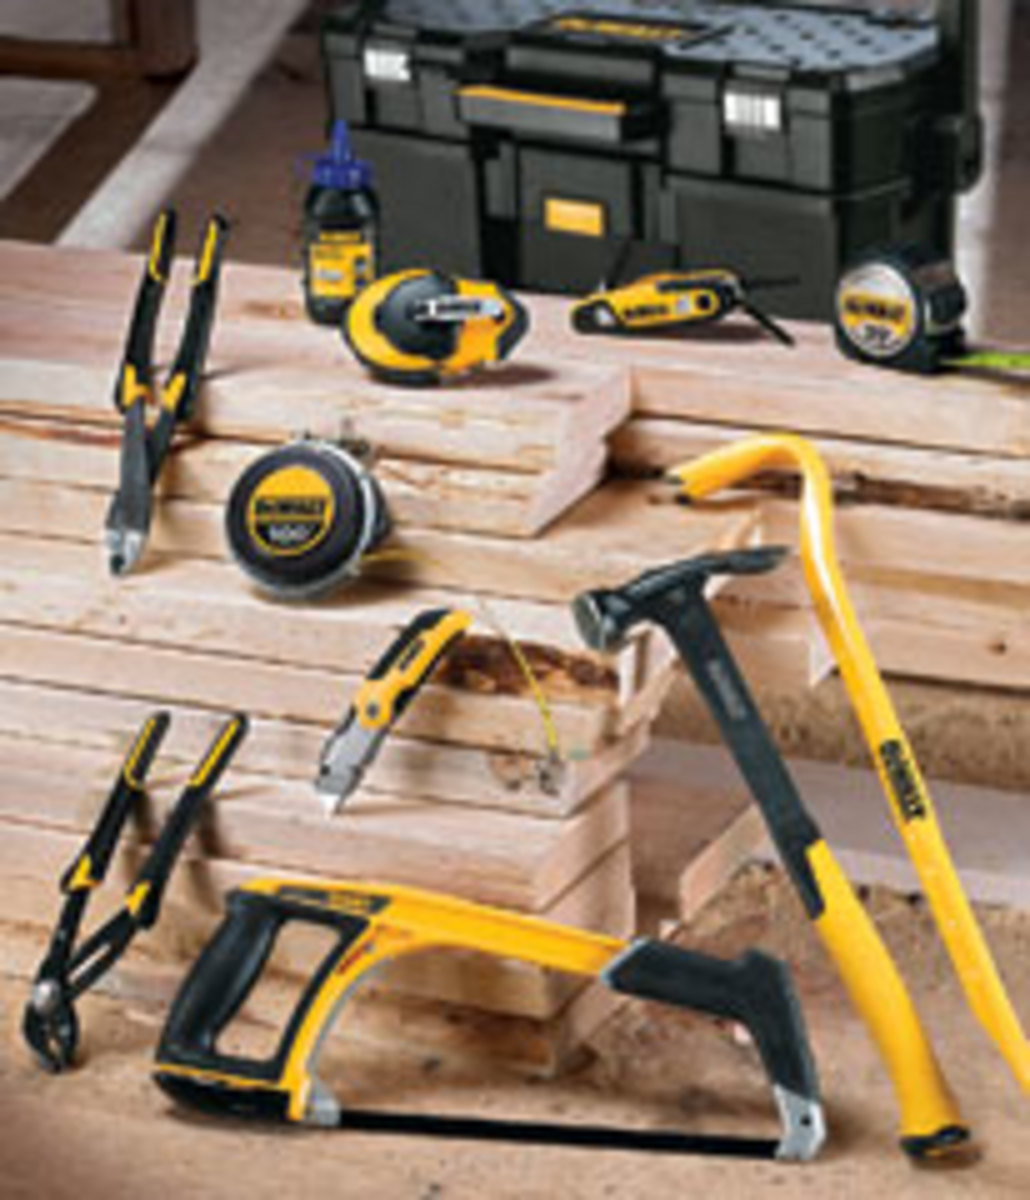 DeWalt has introduced a line of hand tools for professional use.